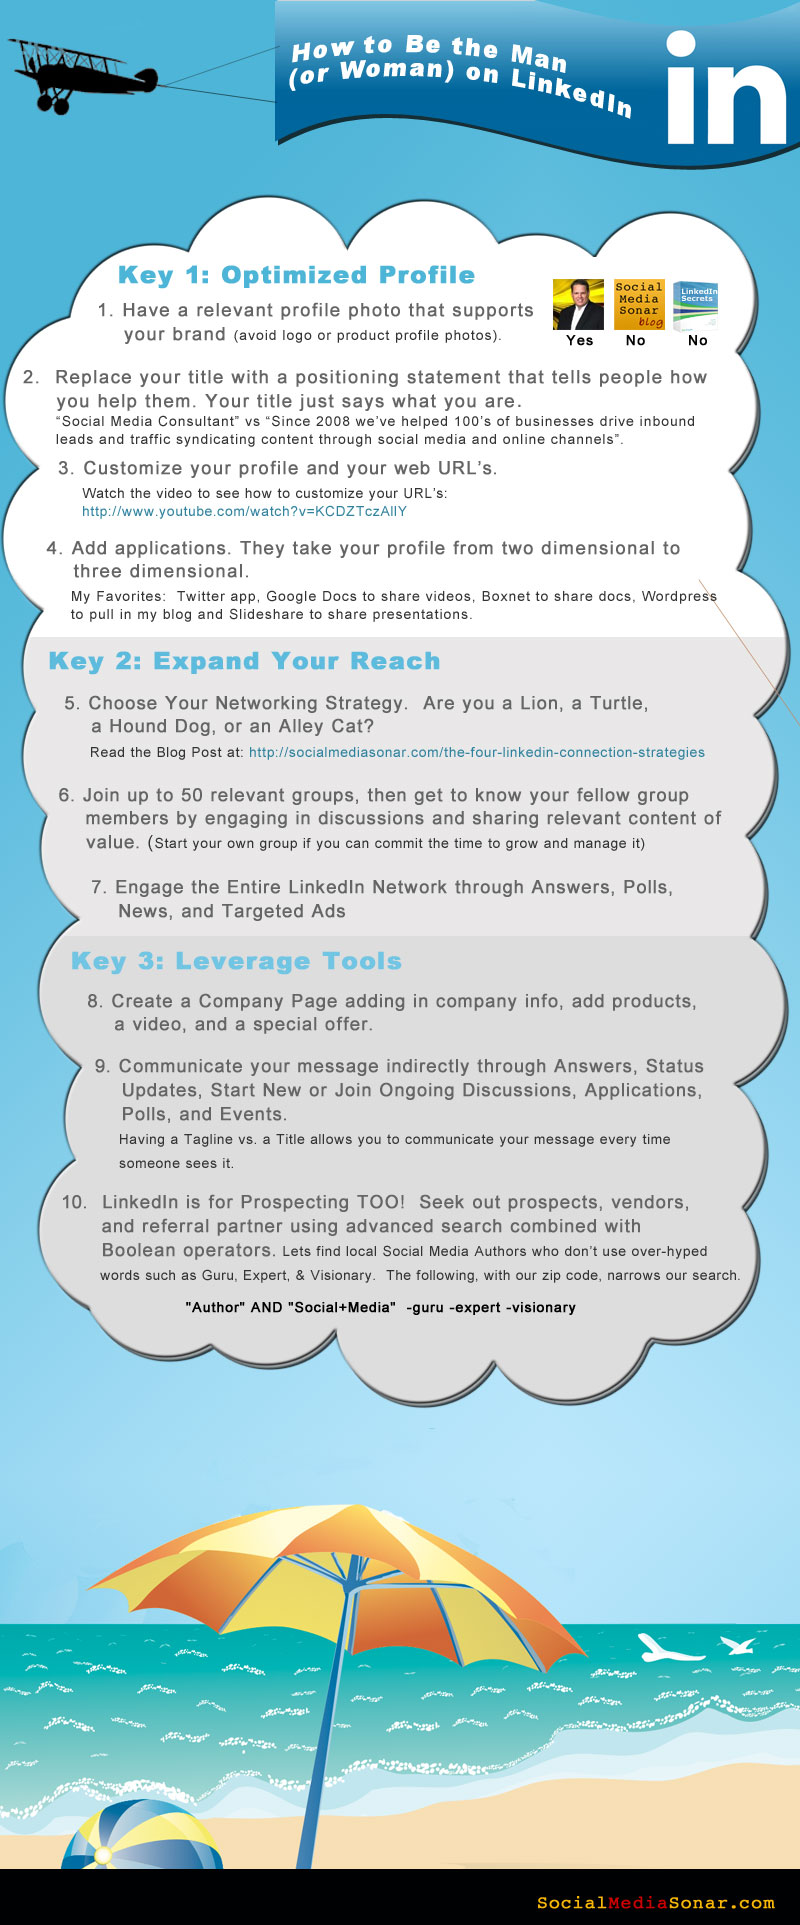 10 Great LinkedIn Tips and Tricks